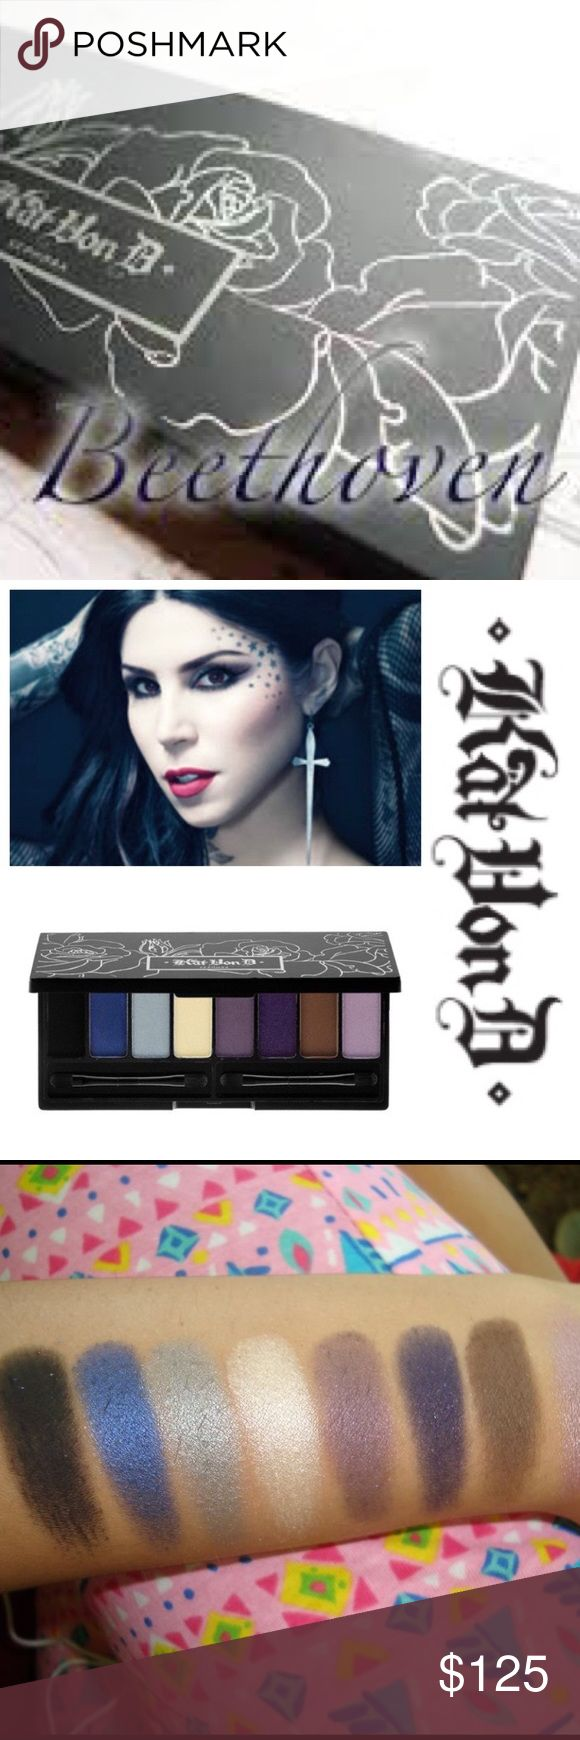 🎹🎼Kat Von D- Beethoven Eye Palette!! 🎼🎹 🌟💯🙌 100% Authentic & AMAZING!!!!! 🌟💯🌟 Ugh it almost hurts me to let this gem go! This is an extremely RARE and WANTED palette by Kat!! 🙌🙌 One of her first palettes ever made and one of her personal favs!! ❤️❤️ It has only lightly been swatched as you can see in the images above!! 😍😍😍 The case is as seen with a little wear due to the age of the palette. The swatched image is not from this pallet. No box. Gifts with Purchase! 😘😘 No rude…